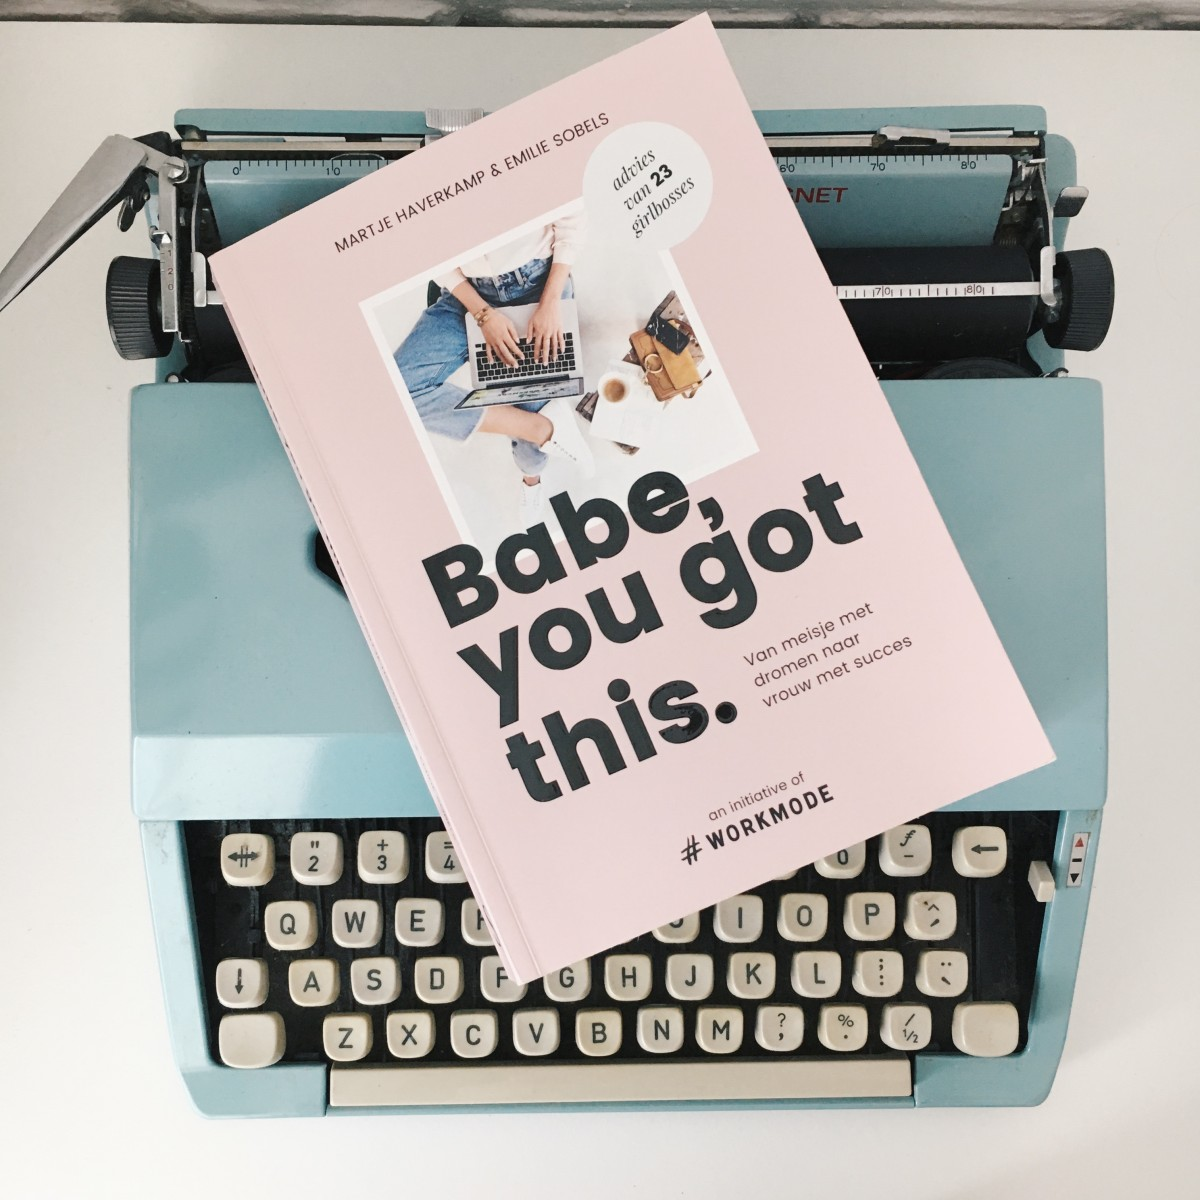 Review: Babe, you got this!